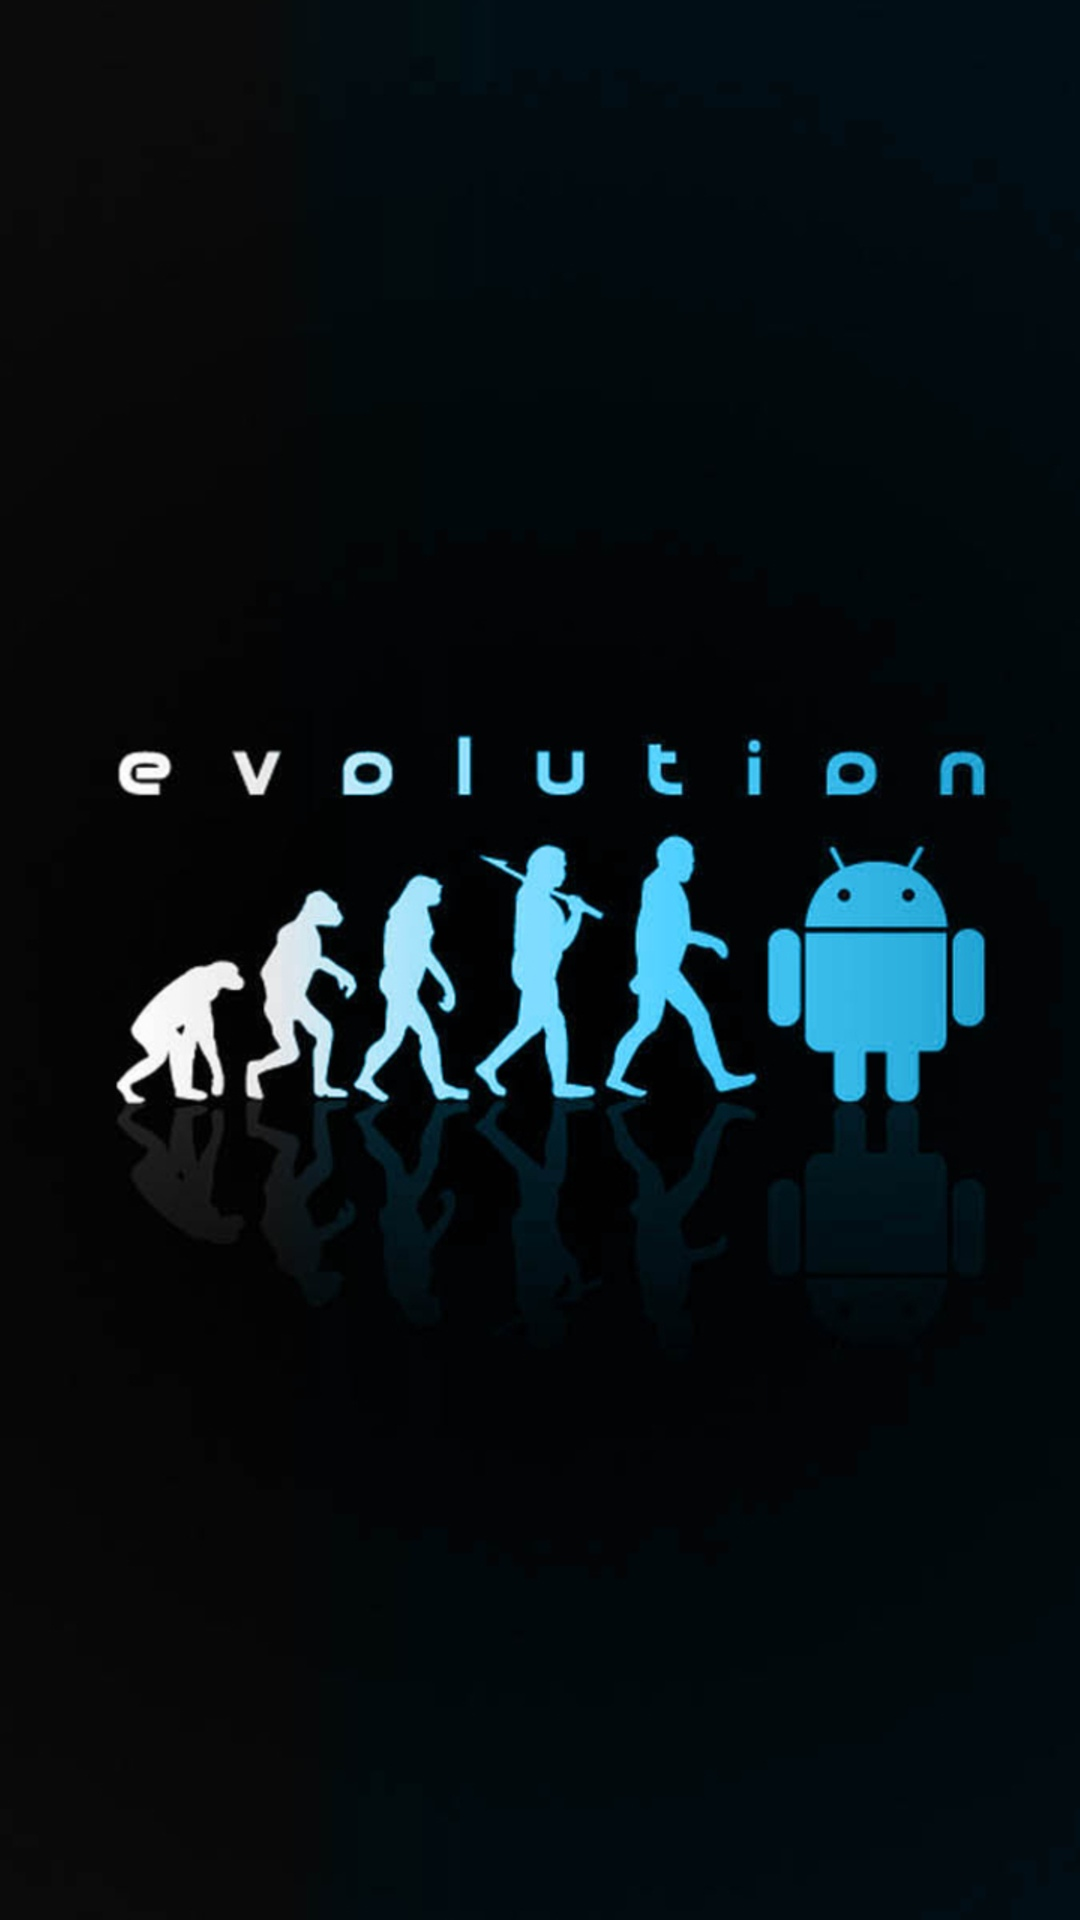 Android Evolution Smartphone Wallpapers HD